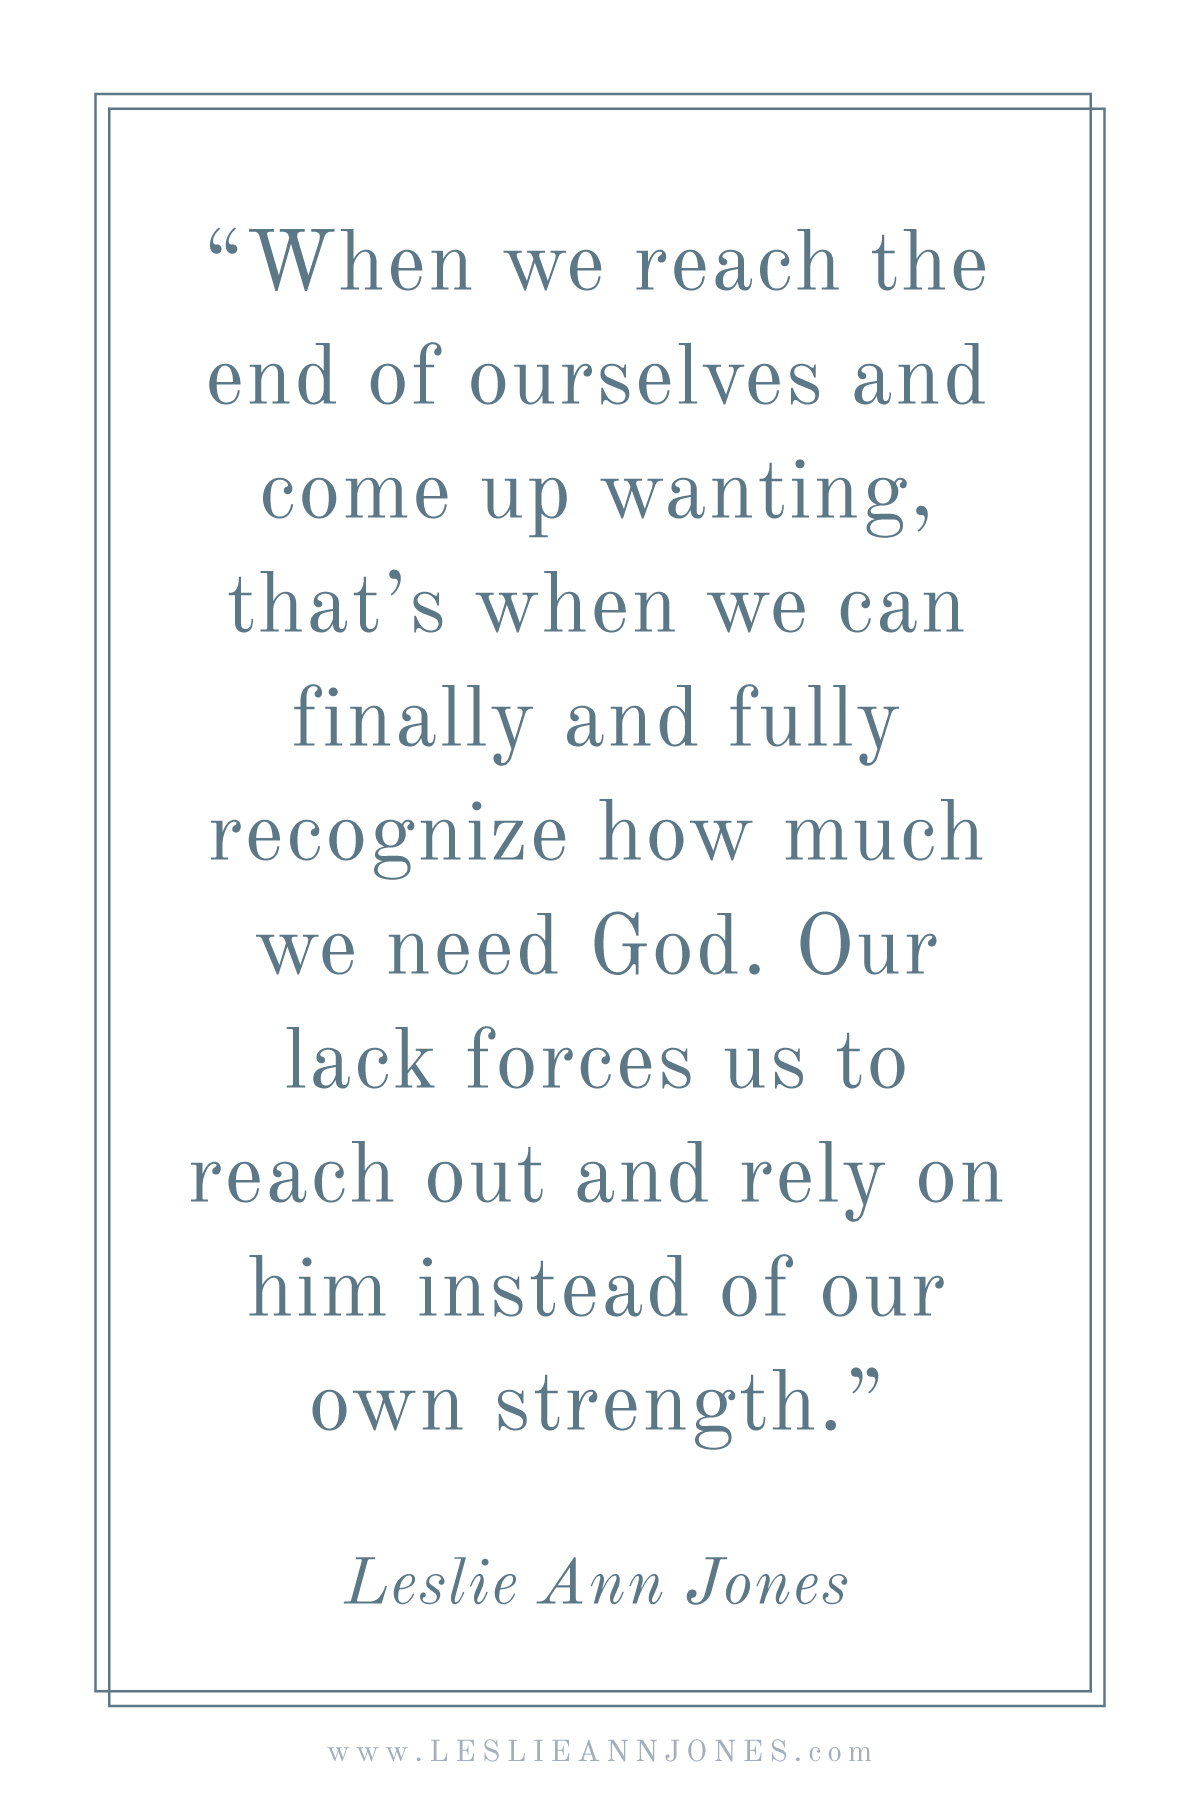 """When we reach the end of ourselves and come up wanting, that's when we can finally and fully recognize how much we need God. Our lack forces us to reach out and rely on him instead of our own strength.""   Leslie Ann Jones"